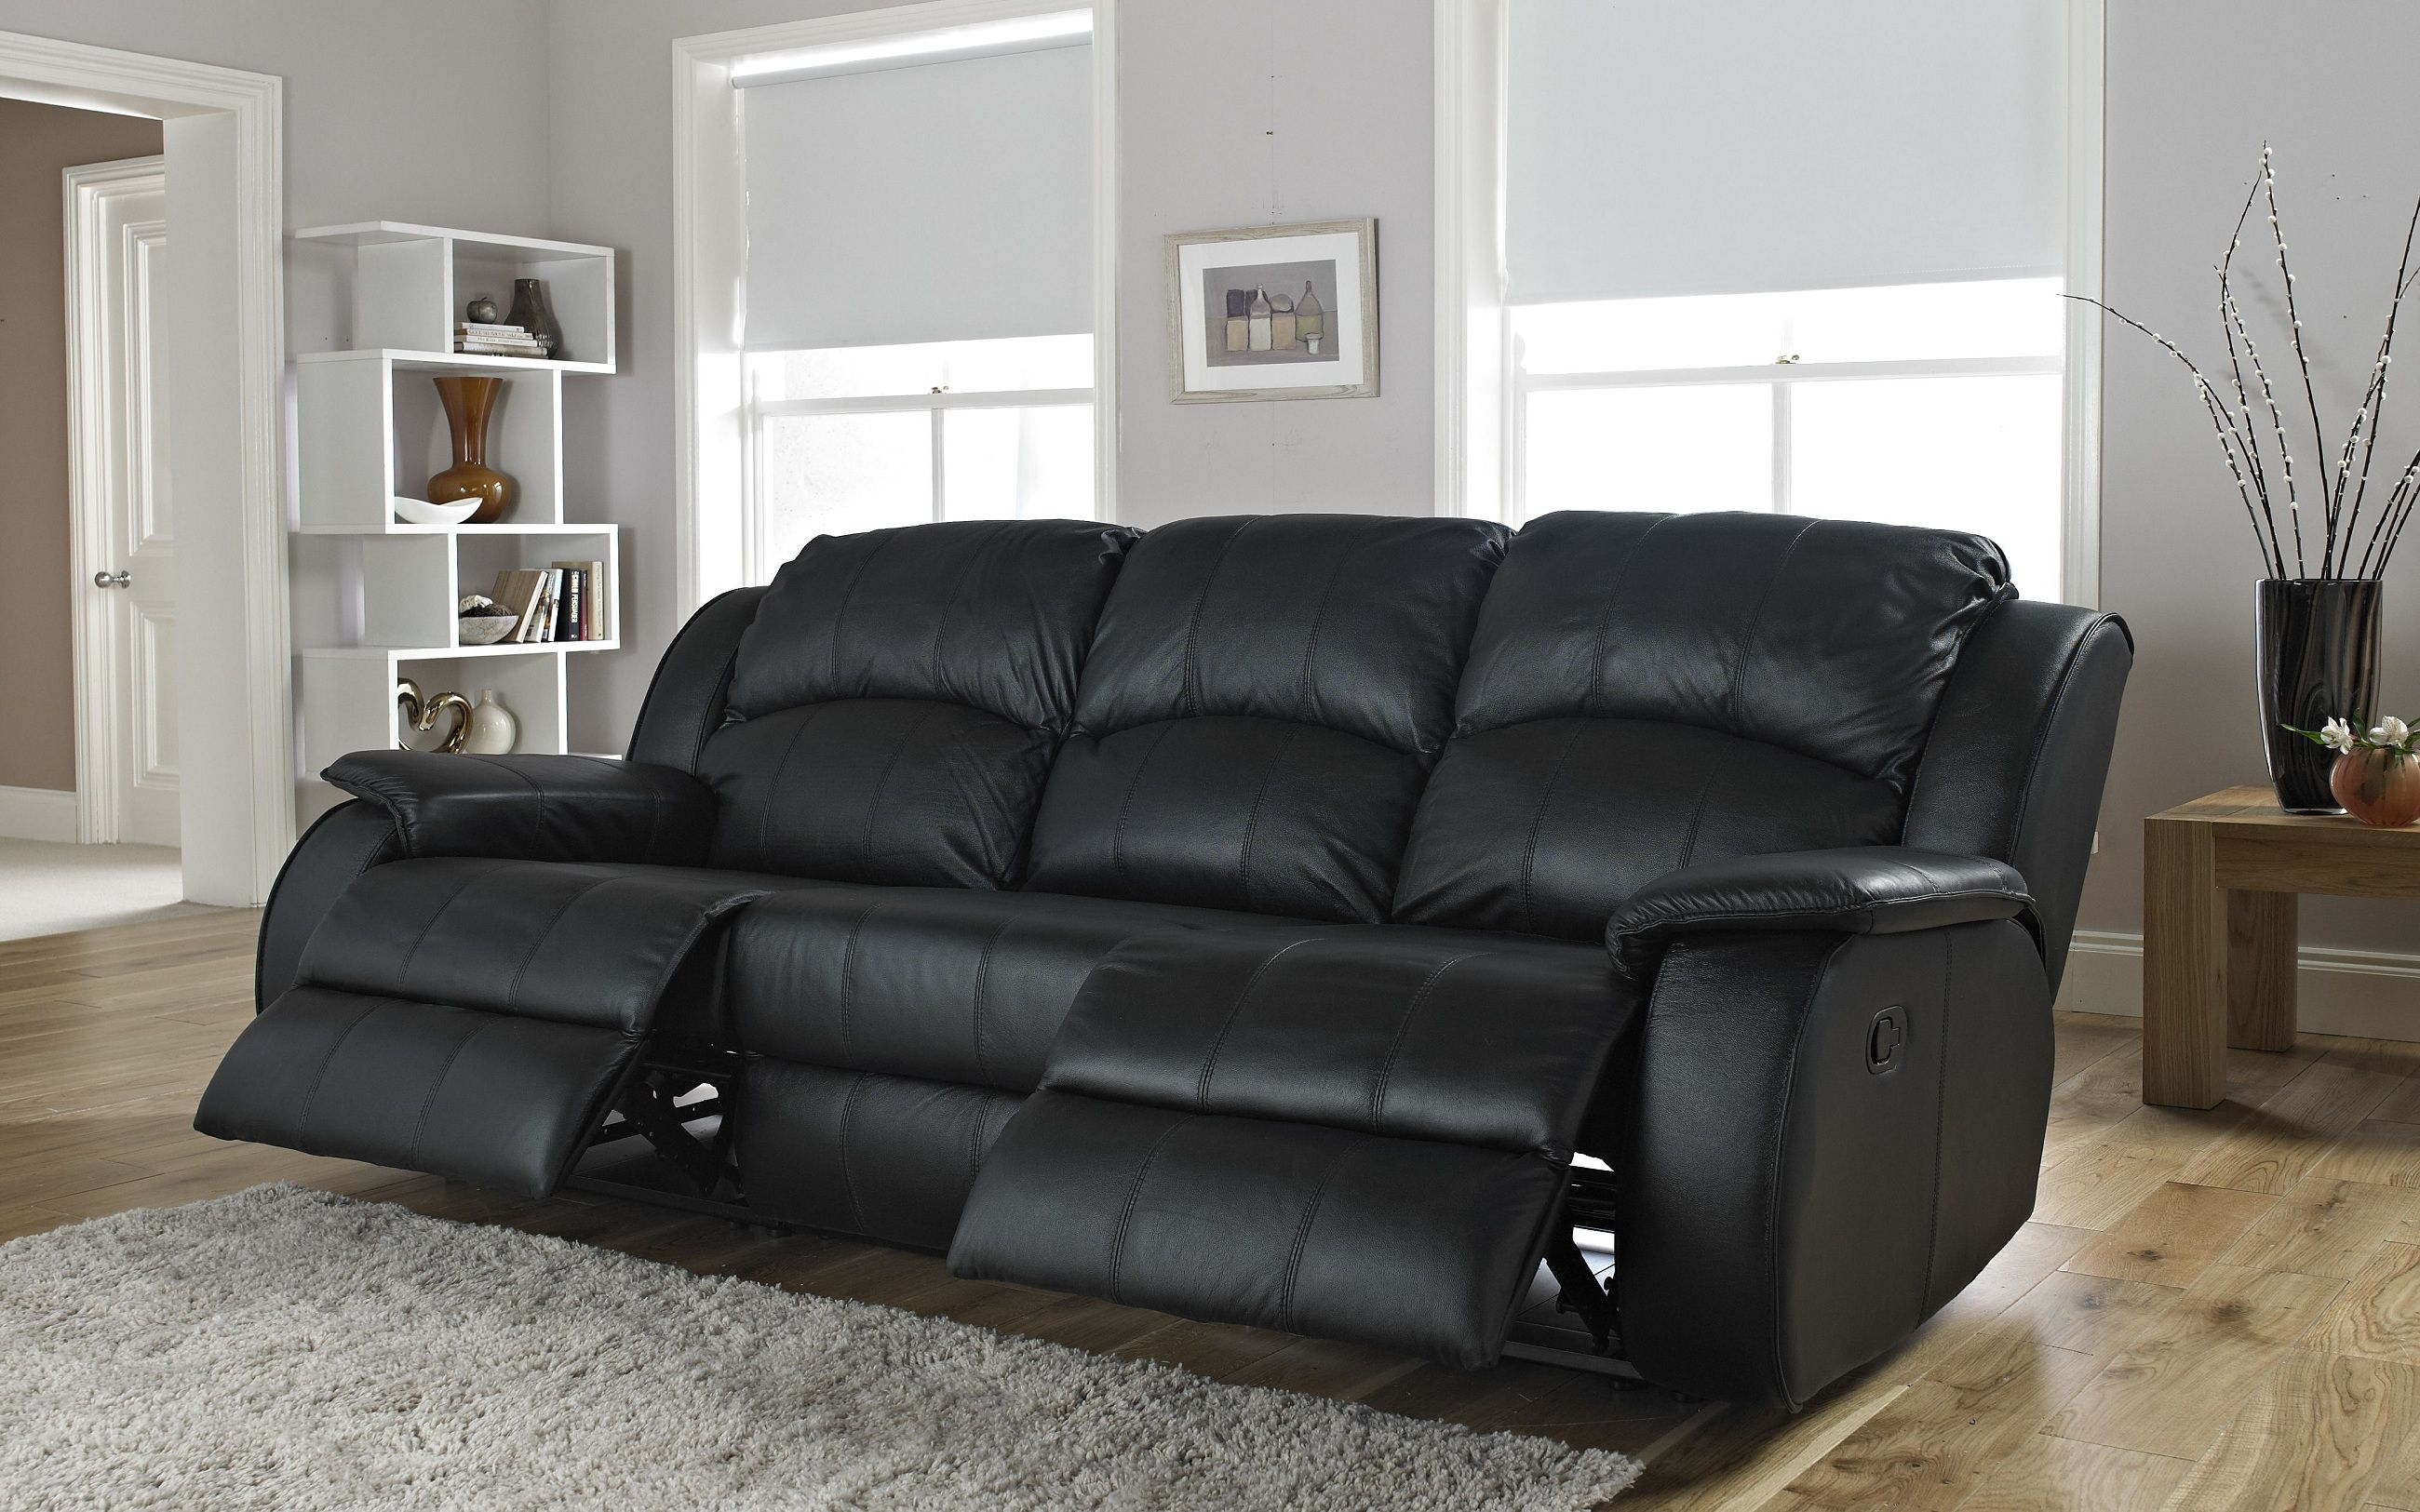 to chaise or not to chaise...recliners are pretty sweet.